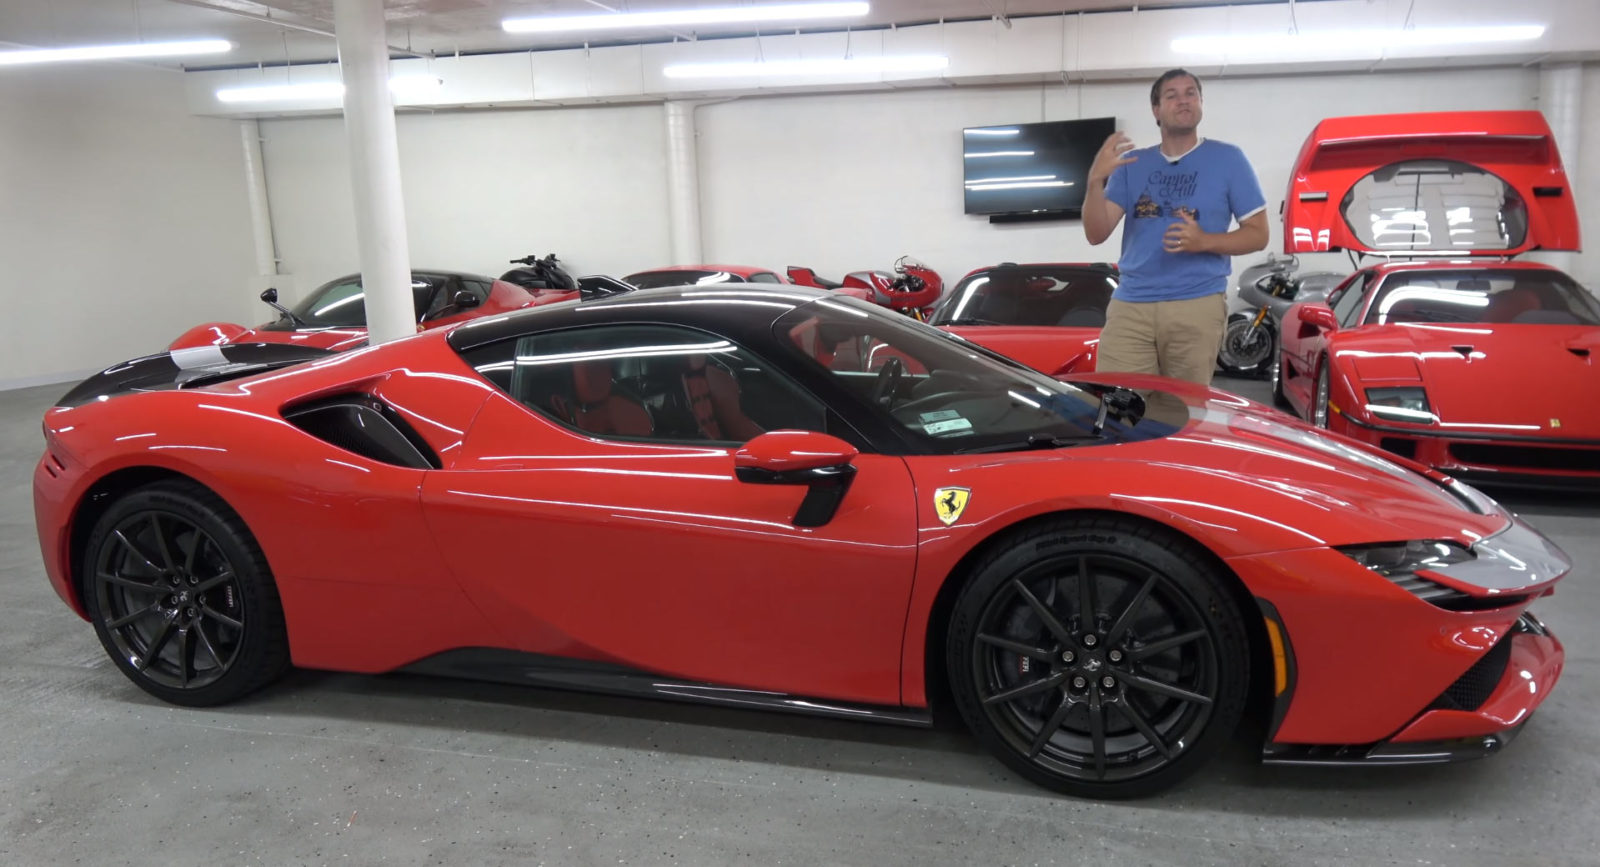 the-sf90-stradale-is-unlike-any-other-ferrari-ever-built